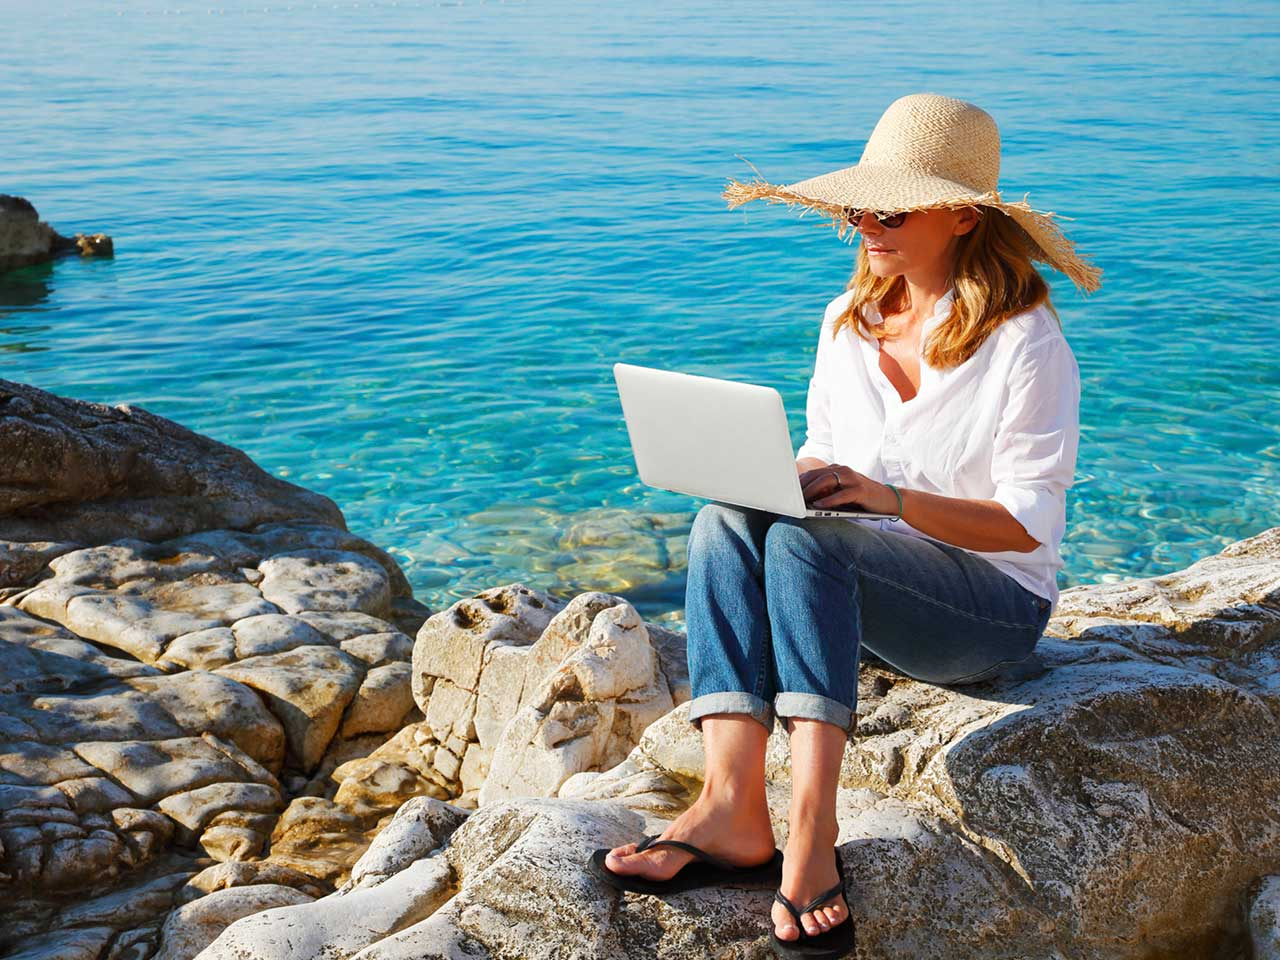 Woman using laptop while on holiday at the beach